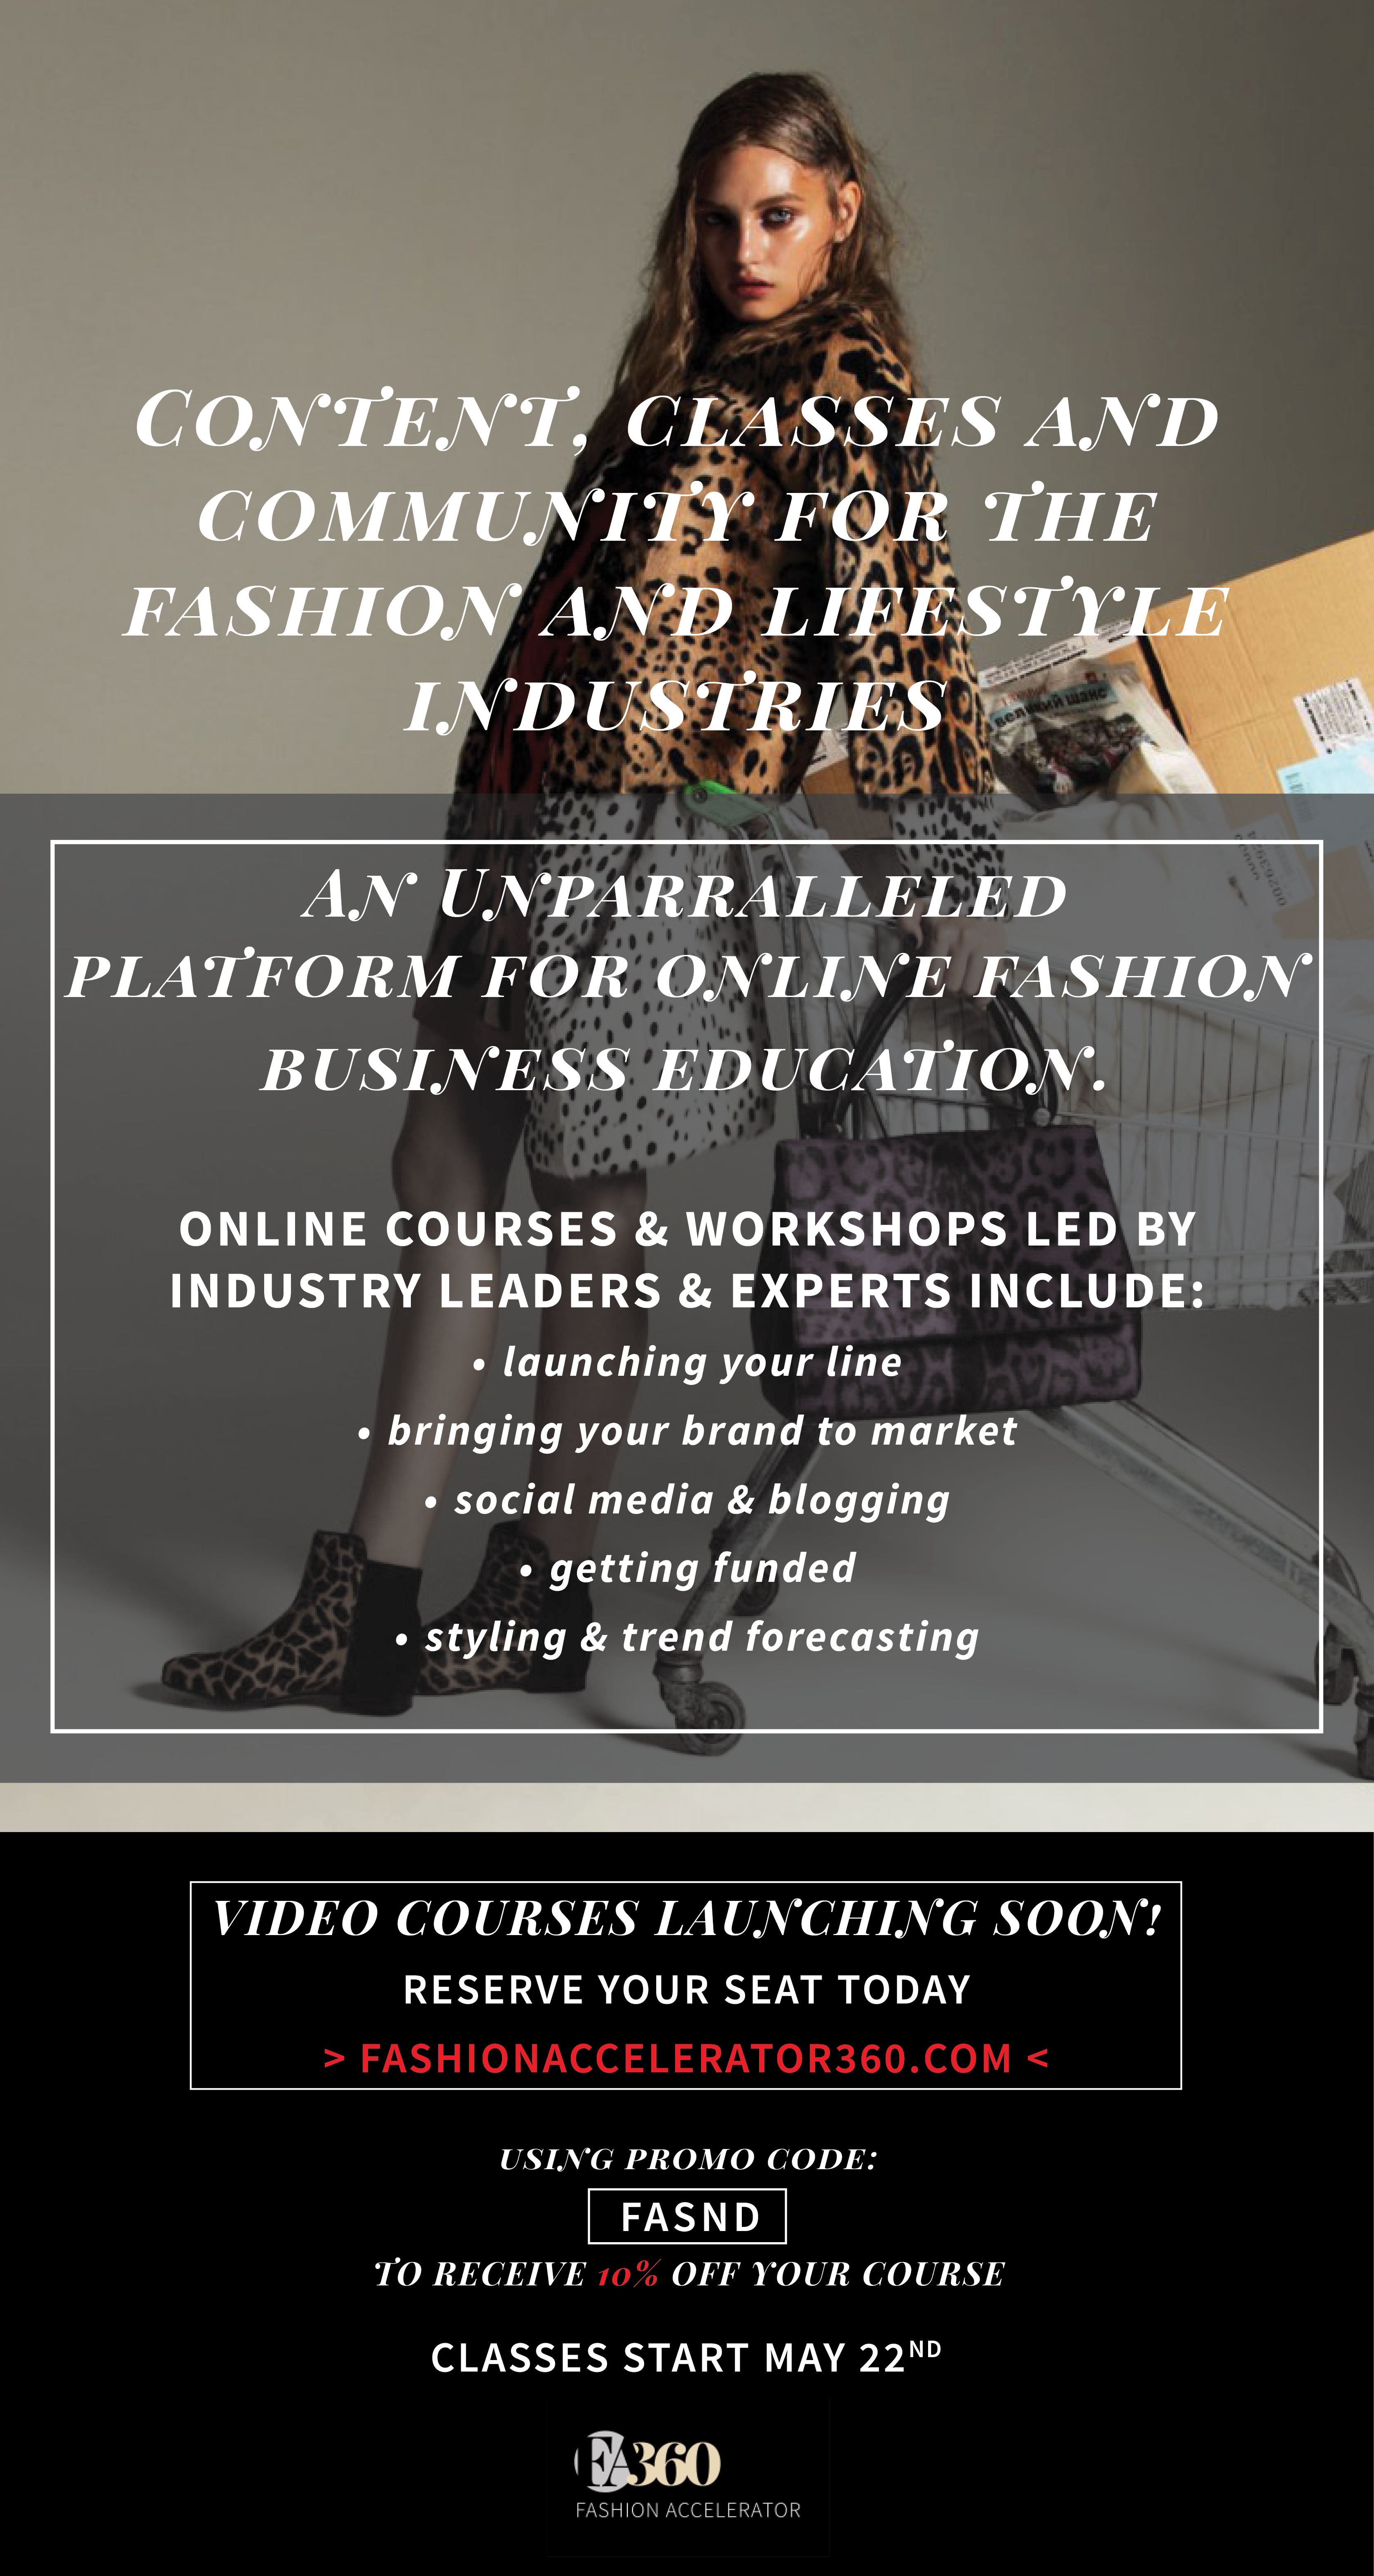 Seattle Fashion Incubator Joins Forces with Fashion Accelerator 360